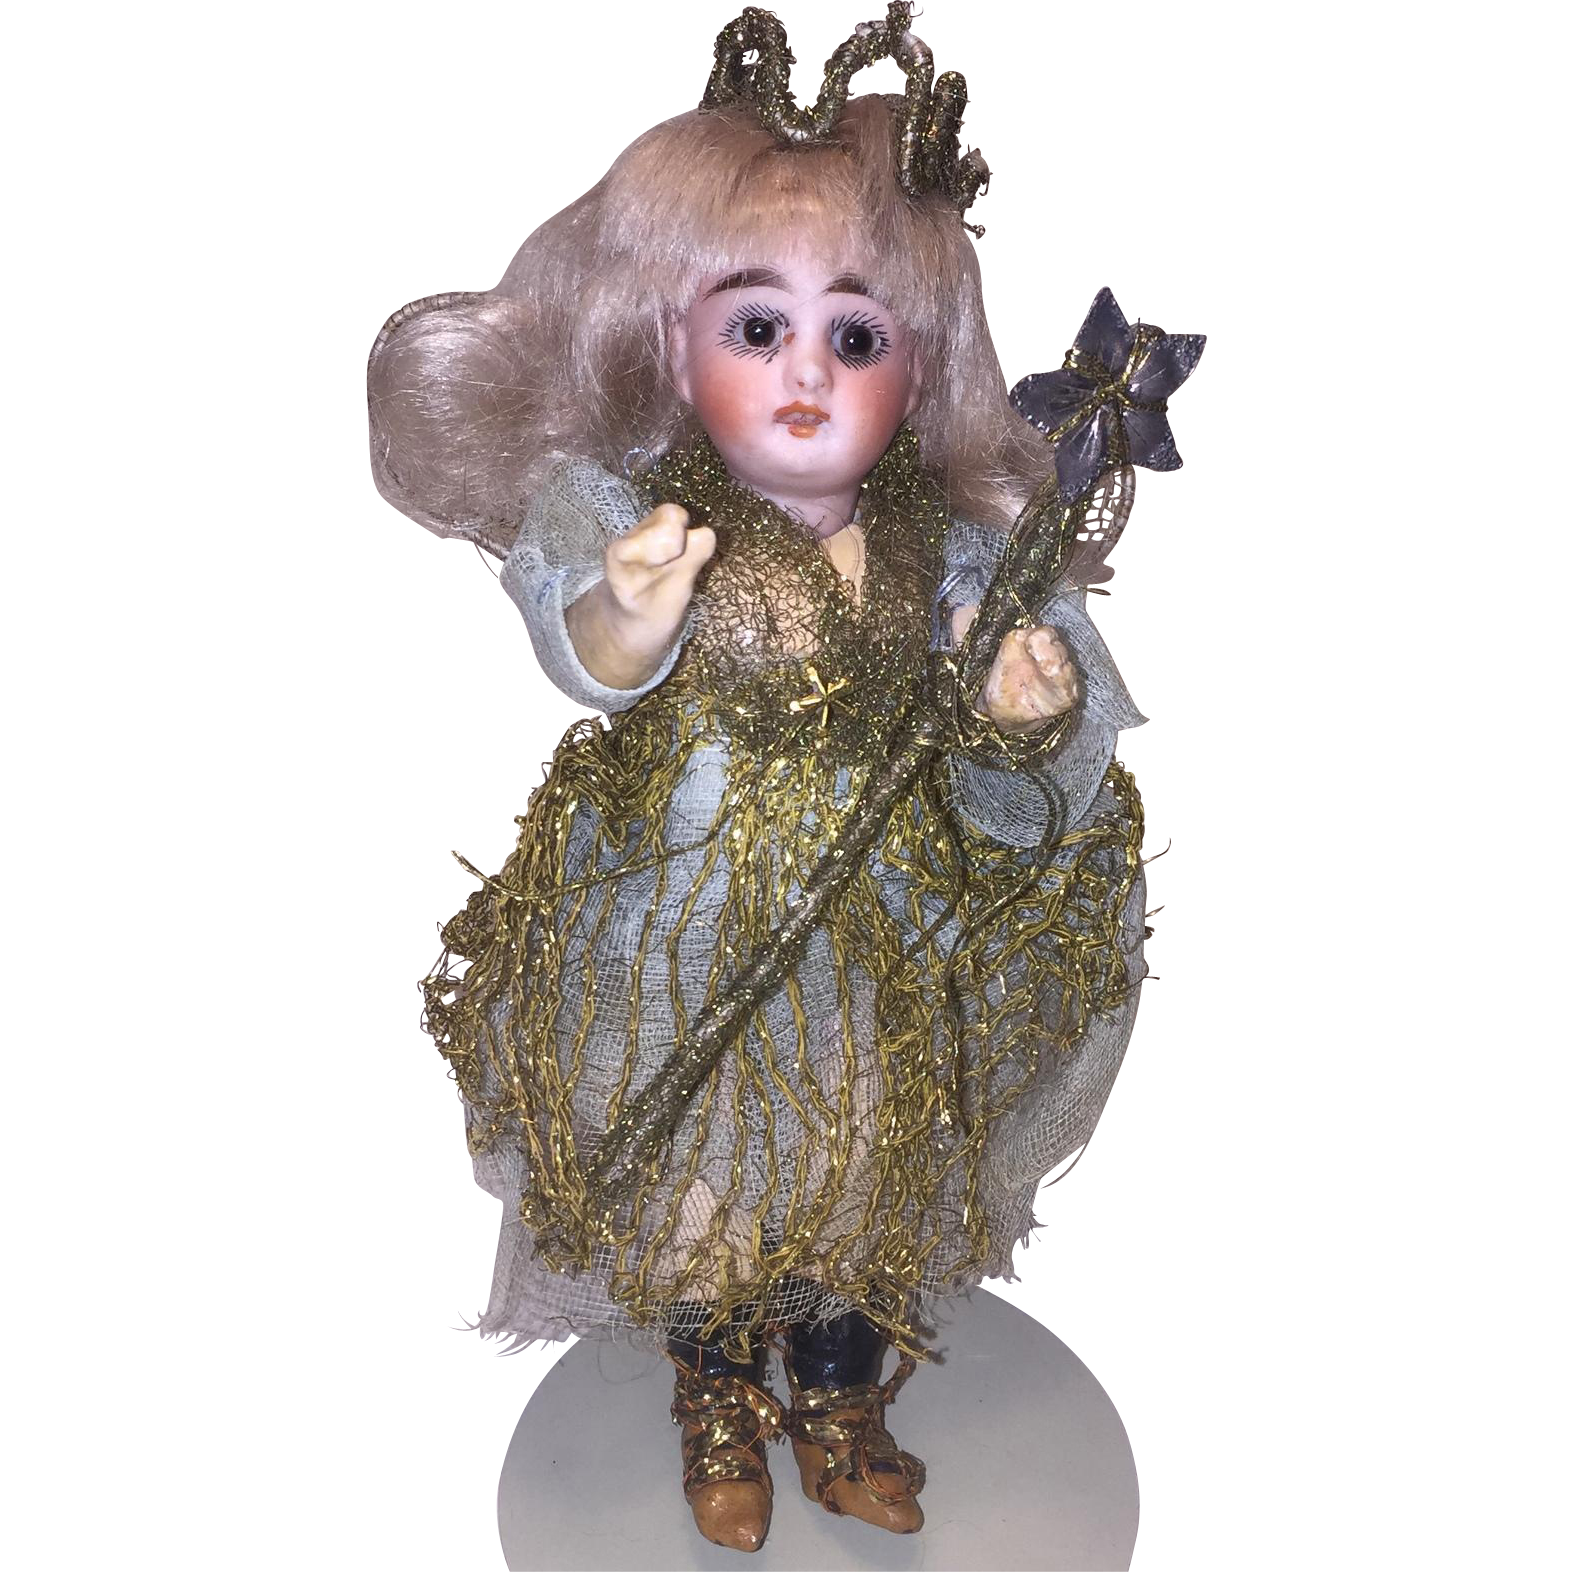 The Sweetest Antique All Original Fairy Doll, Bisque Head Composition